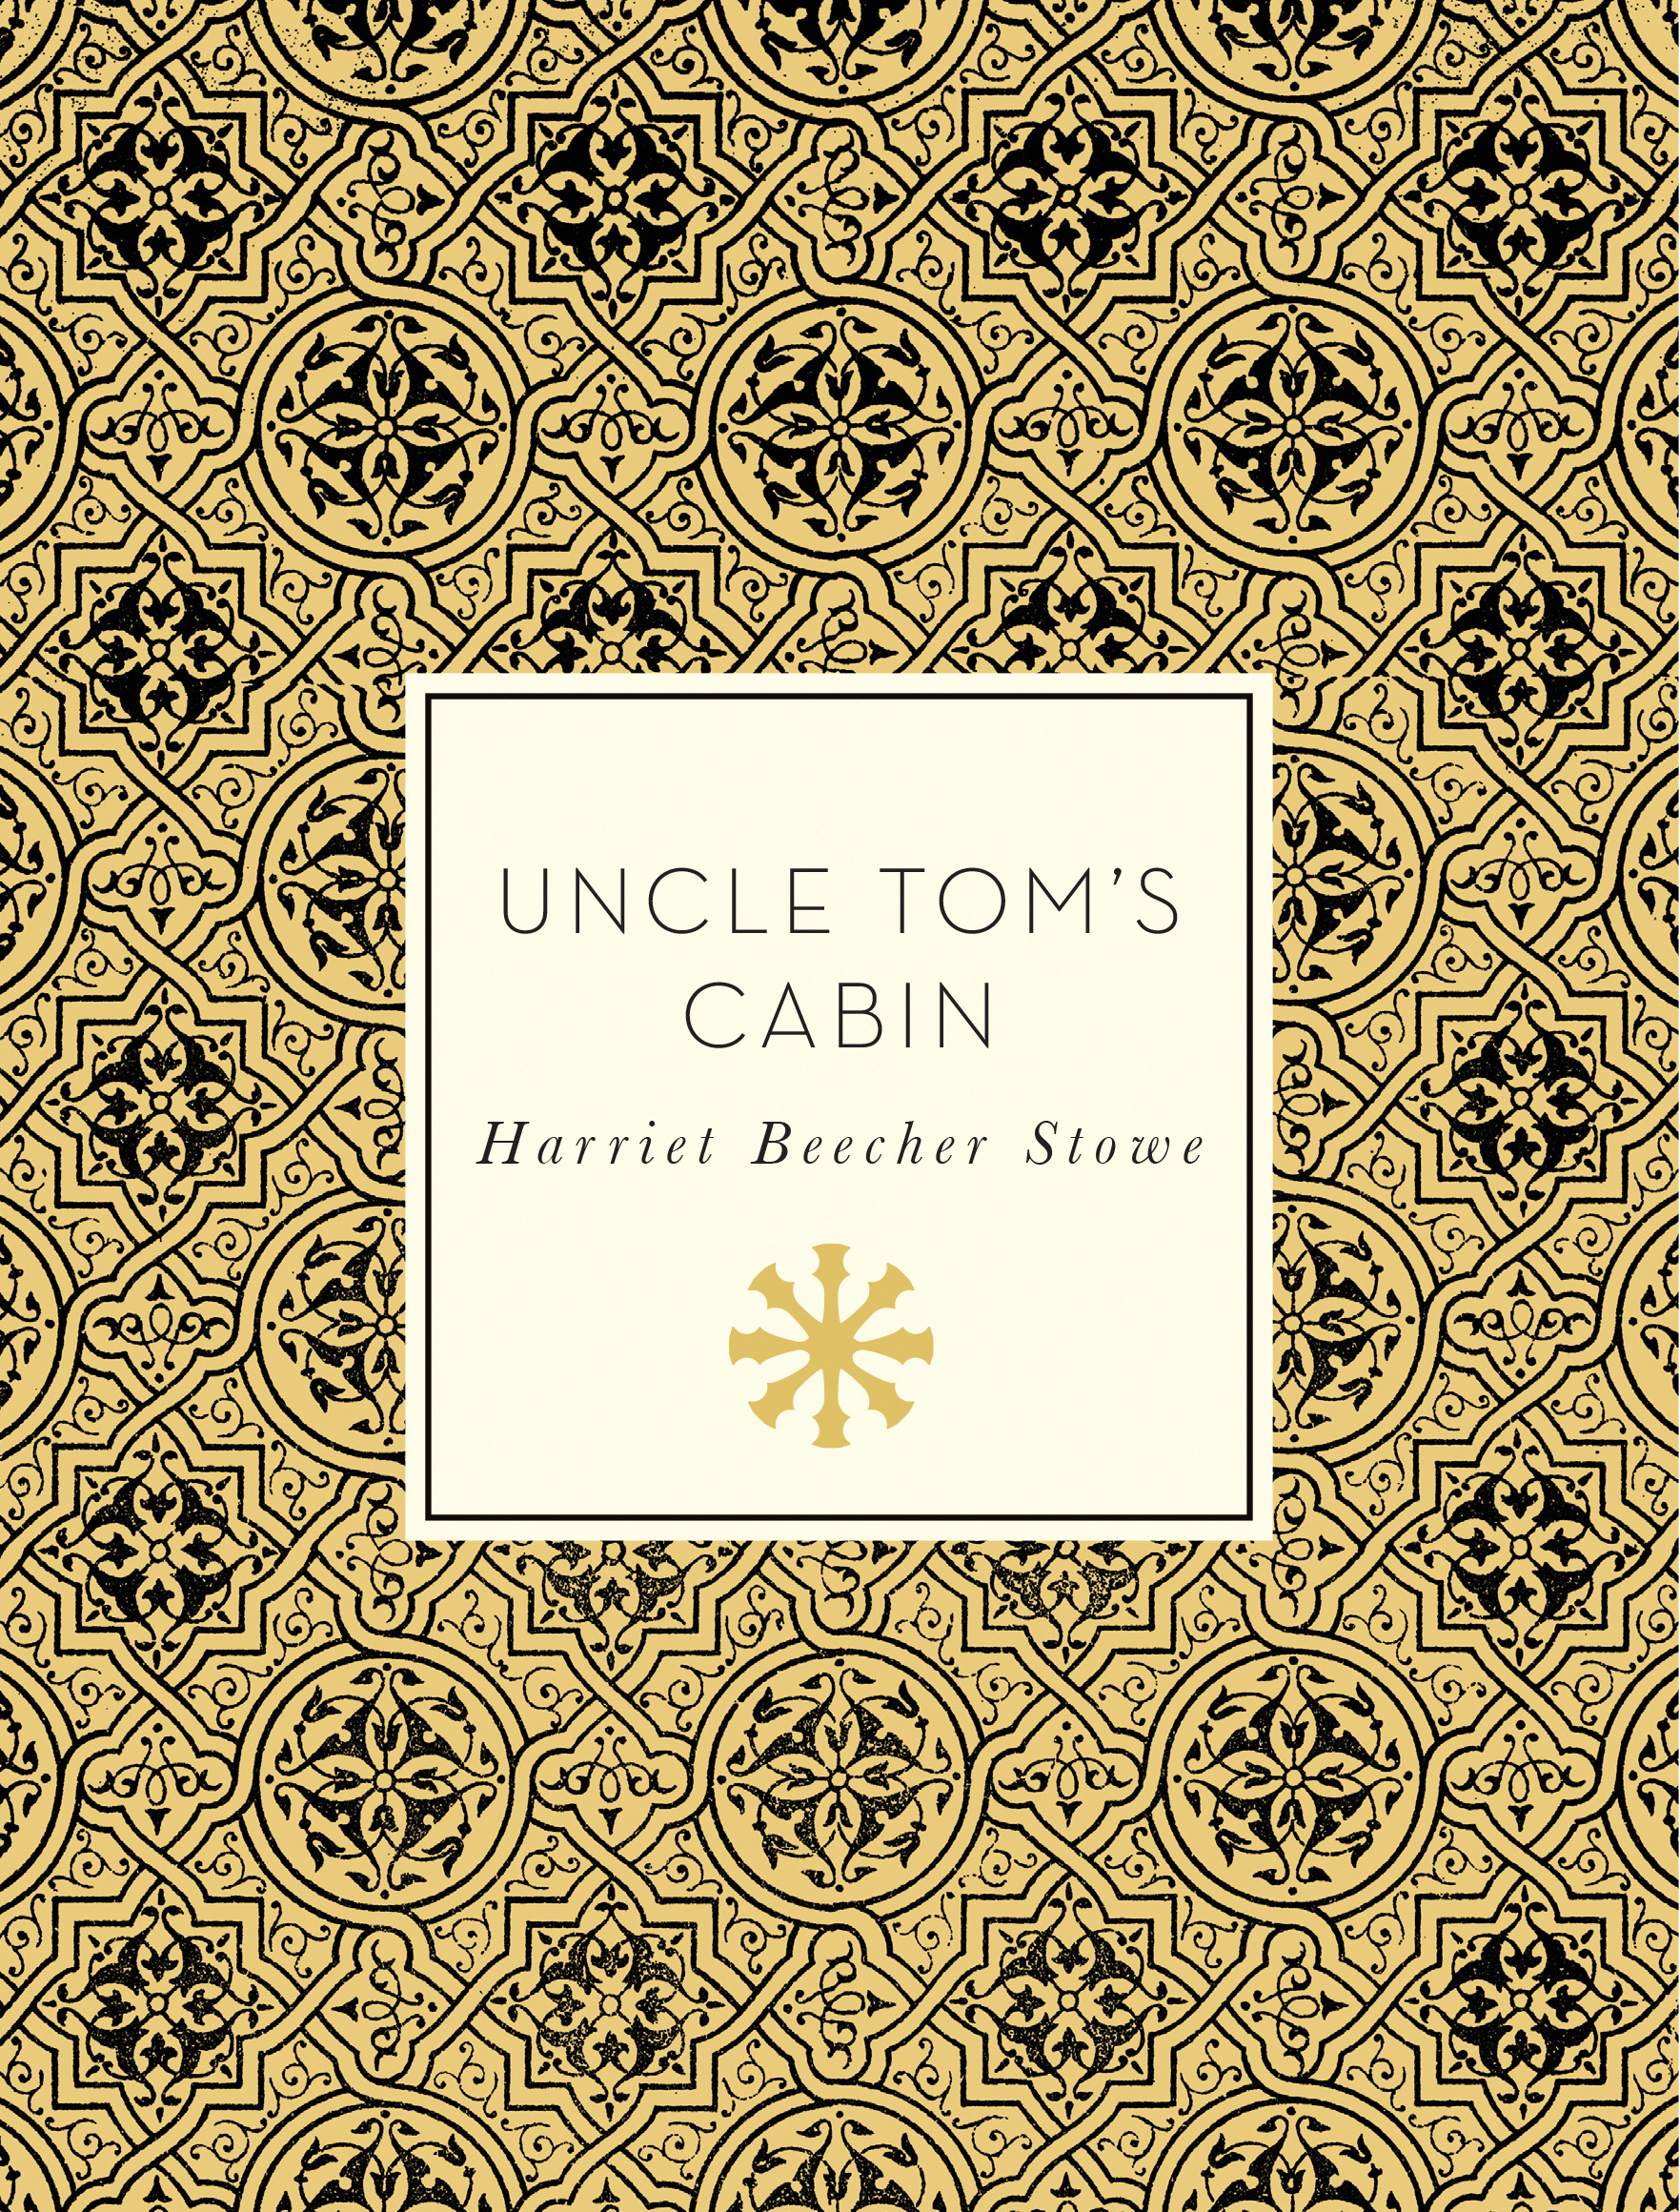 a summary of chapter 18 to 33 in the novel uncle toms cabin by harriet beecher stowe Free summary and analysis of chapter 18 in harriet beecher stowe's uncle tom's cabin that won't make you snore uncle tom knows he's lucky his master, st clare, is careless with money the narrator tells us that, if tom were dishonest, he would have plenty of opportunity to snag some cash.